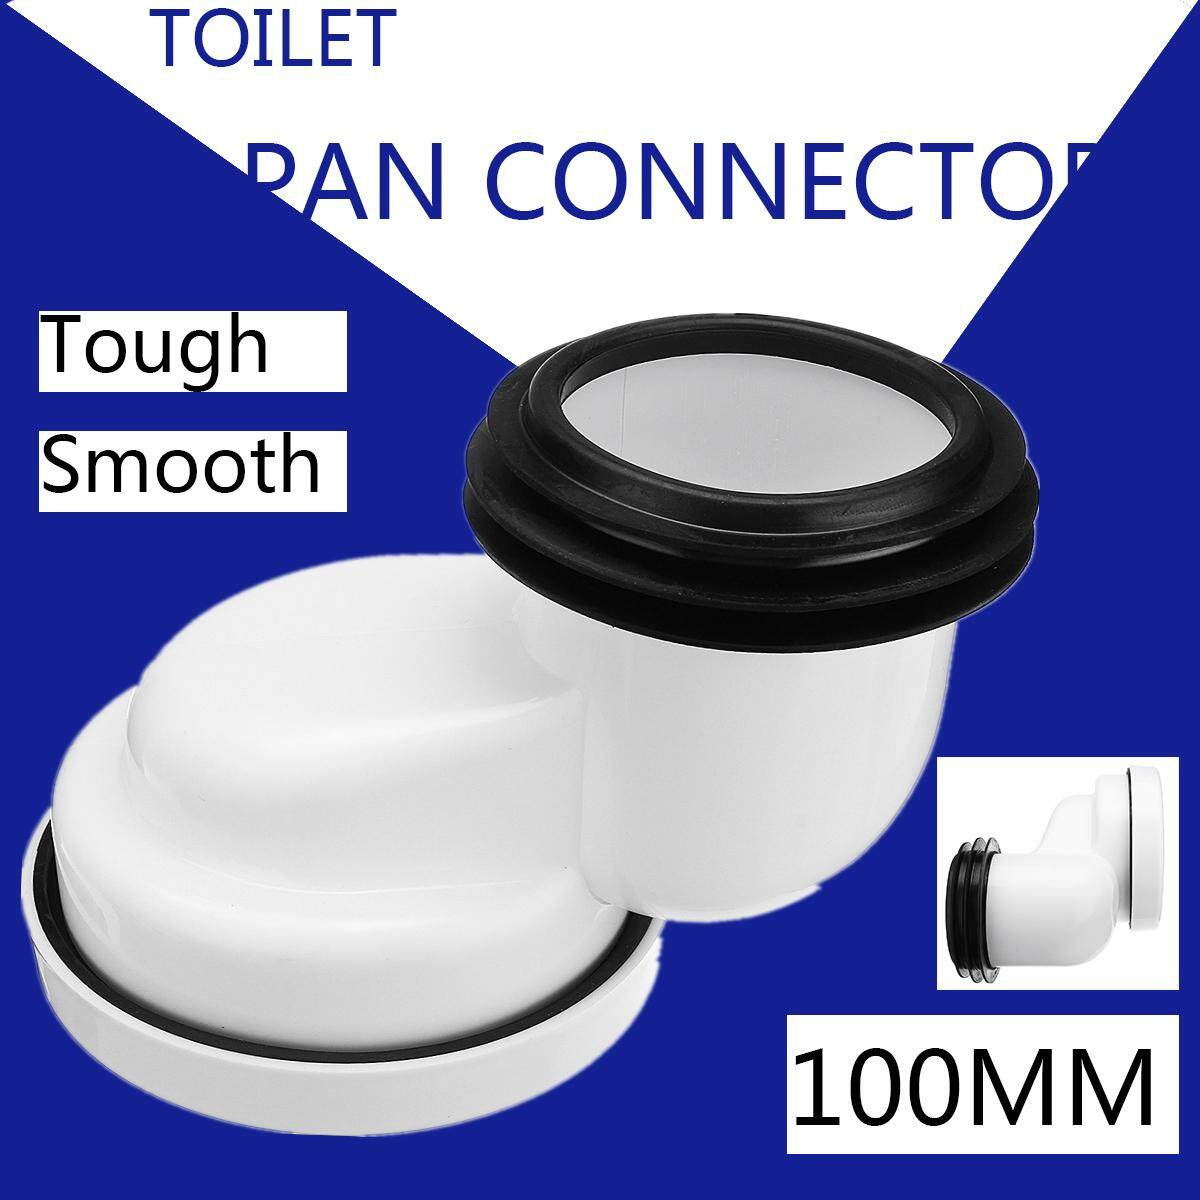 PVC Offset Misaligned Toilet Waste Pan Connector Bowl Smooth Soil Pipe 100mm